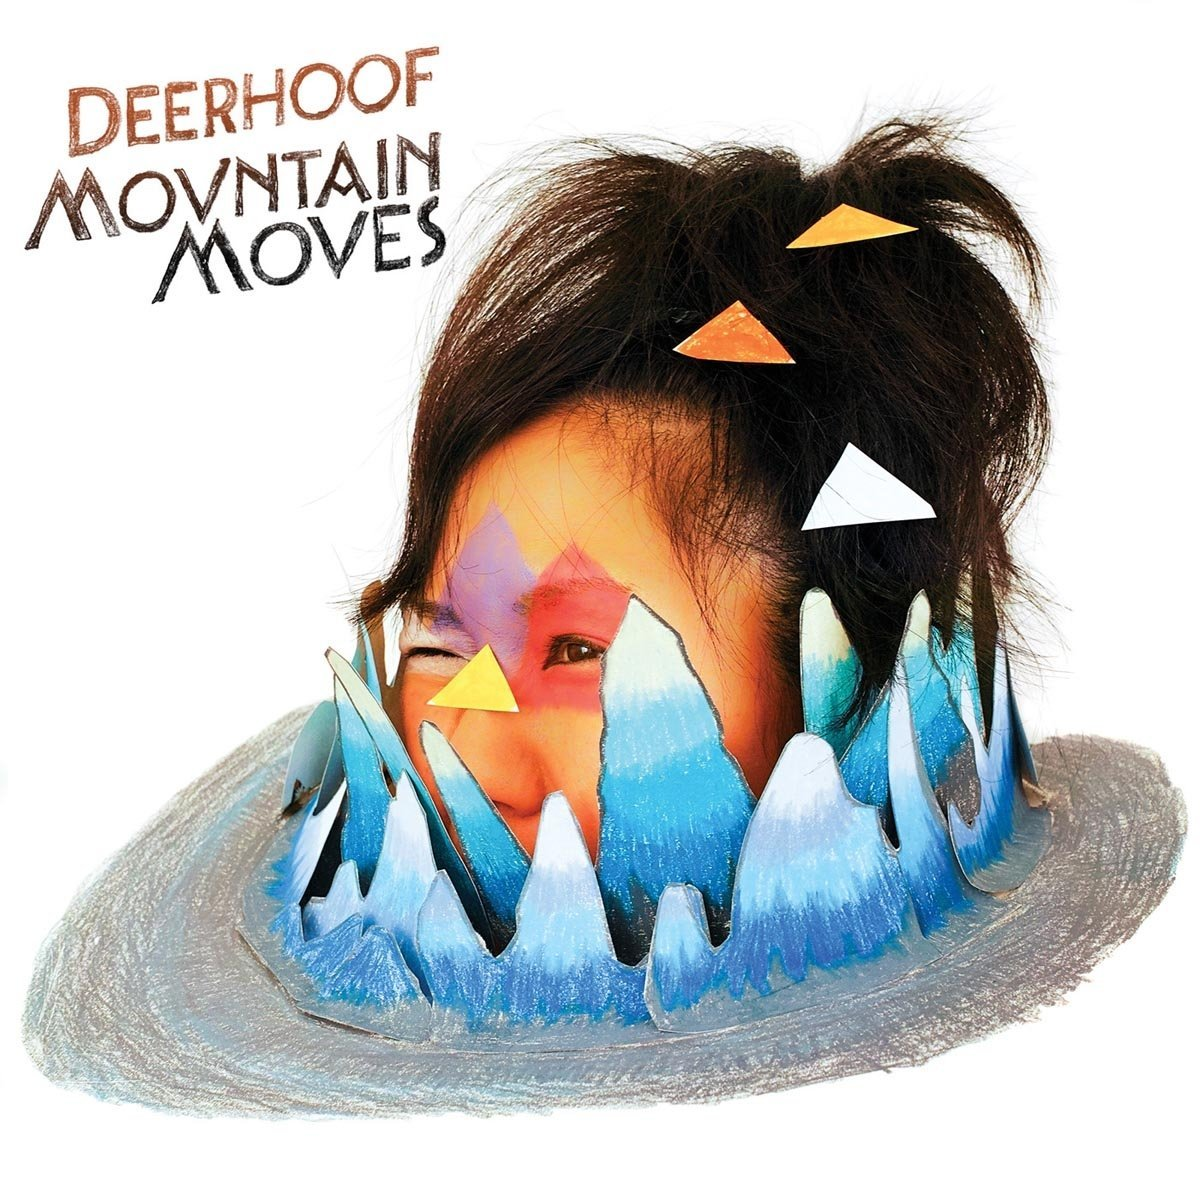 Deerhoof – Mountain Moves (Joyful Noise Recordings)